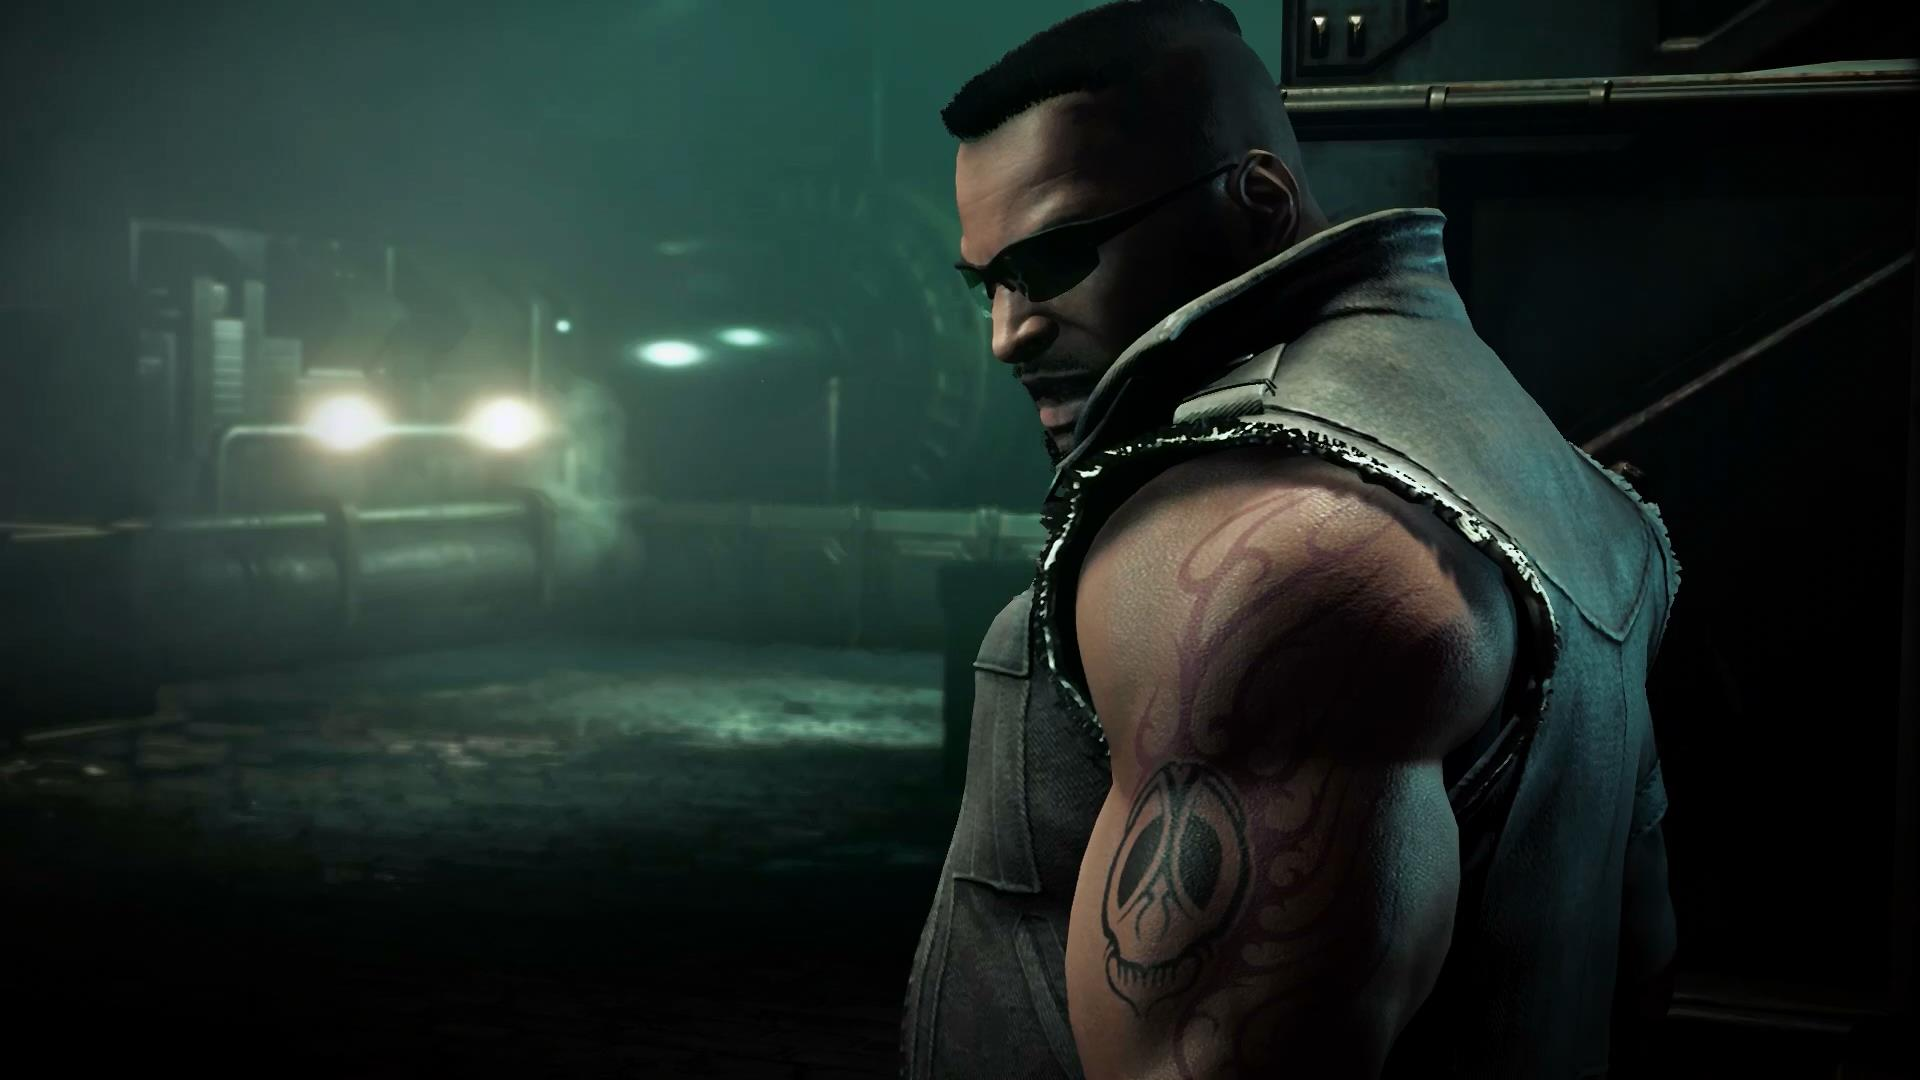 Final Fantasy Vii Remake Will Retain The Essence Of The